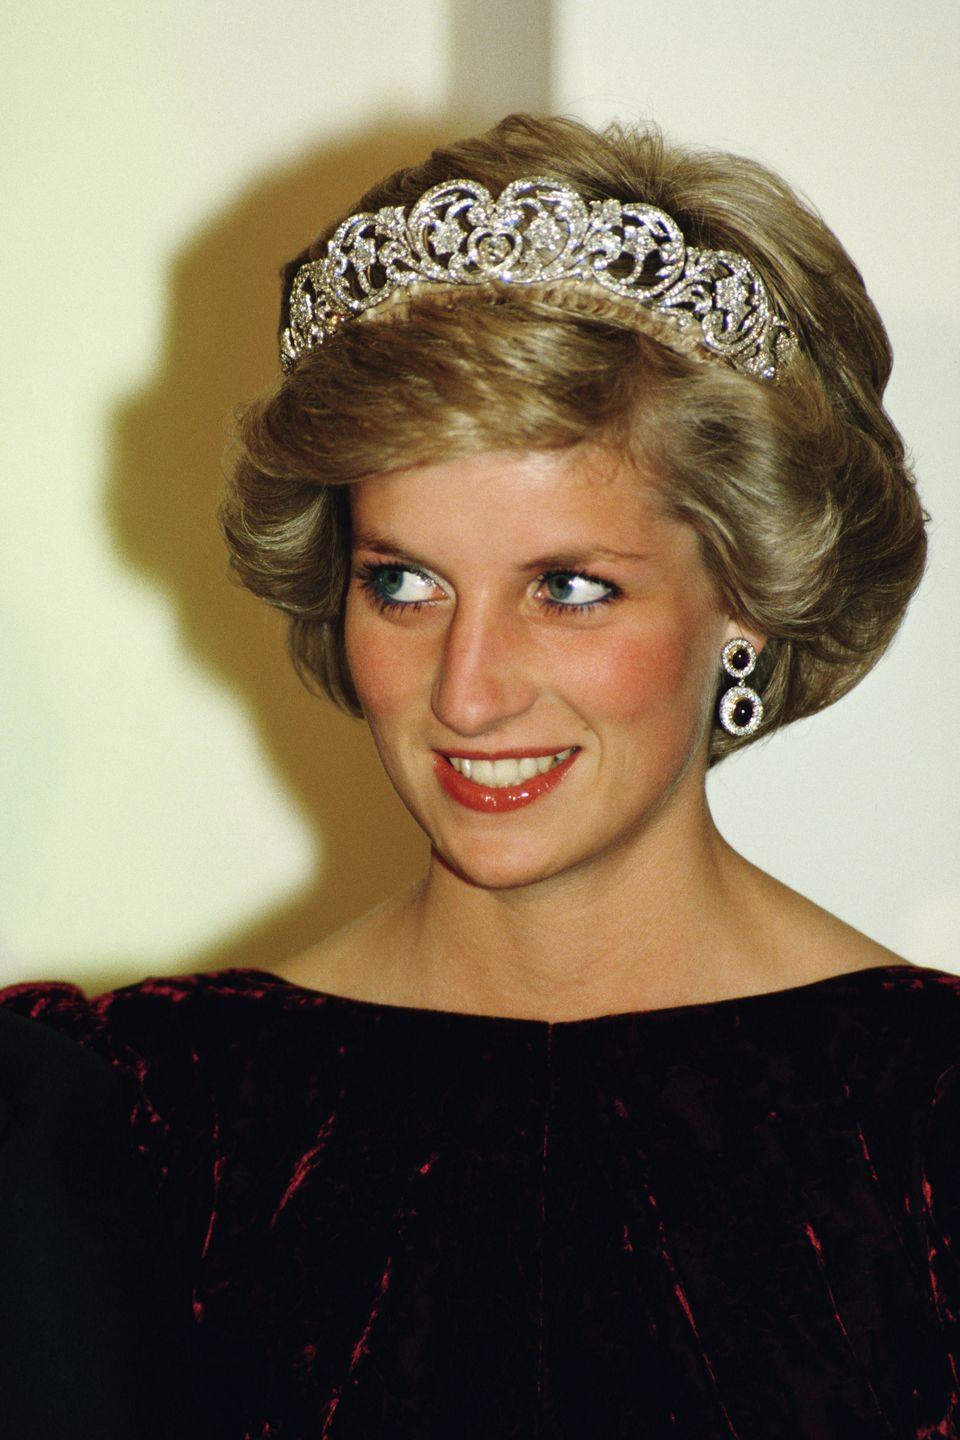 """<p>To get Princess Diana's natural-looking glow, you'll need a big brush. Greenwell <a href=""""http://www.dailymail.co.uk/femail/article-4243454/Diana-s-make-artist-Mary-Greenwell-recreates-look.html"""" rel=""""nofollow noopener"""" target=""""_blank"""" data-ylk=""""slk:advises"""" class=""""link rapid-noclick-resp"""">advises</a> first sweeping a <span class=""""redactor-unlink"""">highlighter</span> on the cheekbones with a contour colour underneath. Then apply blush on the apples of the cheeks and the <span class=""""redactor-unlink"""">bronzer</span> along the outside of your near your ears and hairline.</p>"""